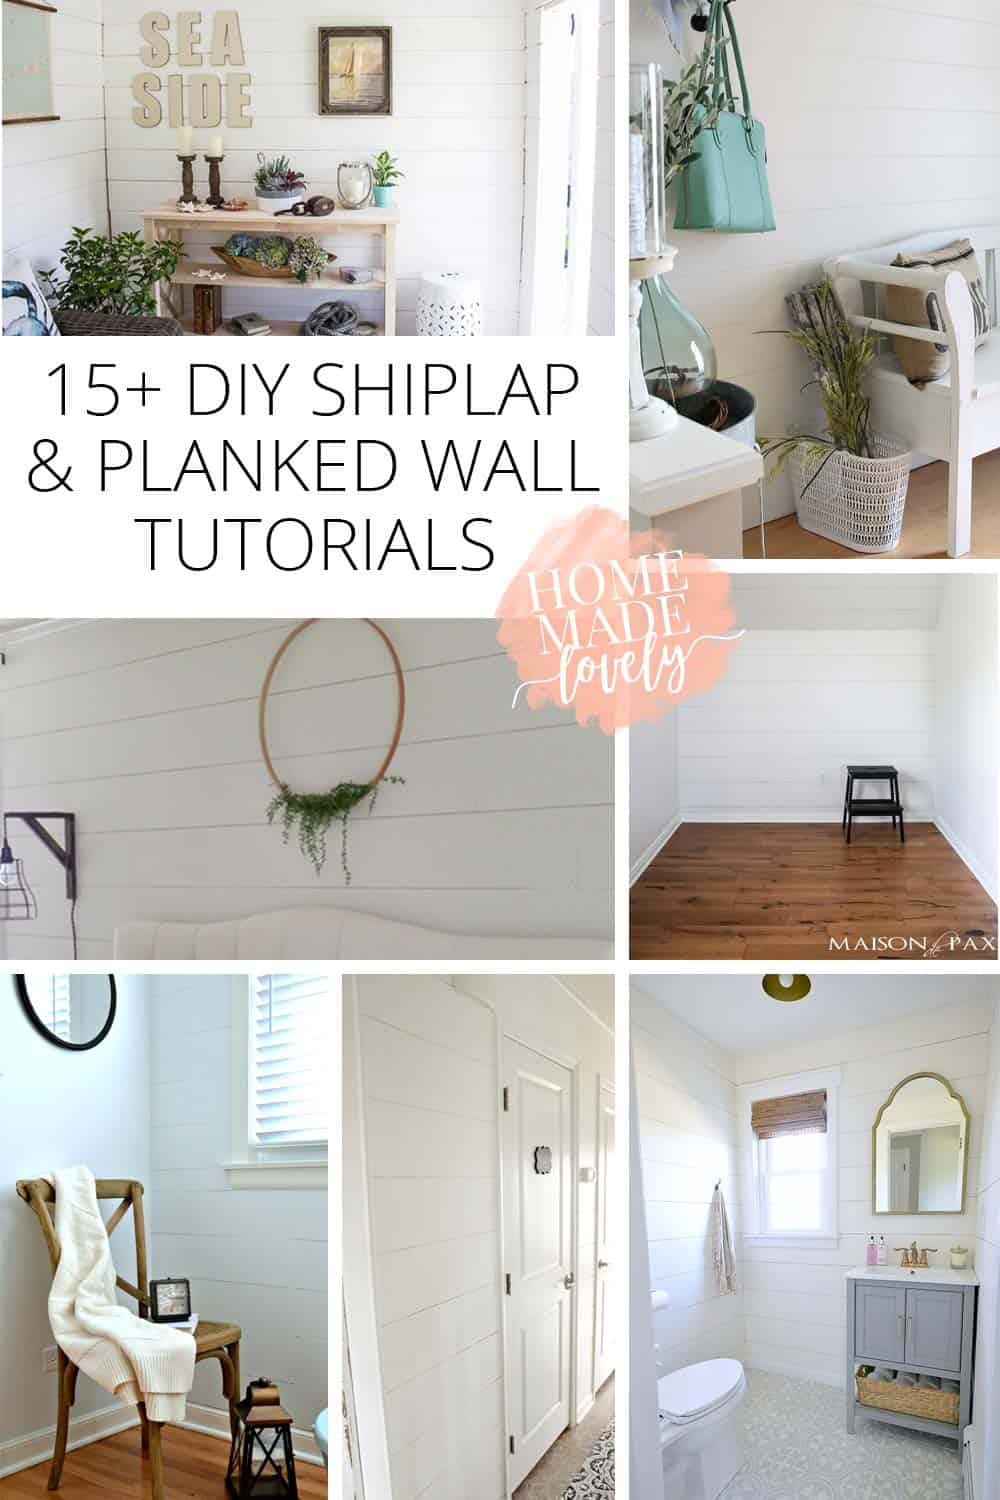 Not all of us are lucky enough to have Chip and Joanna find original shiplap in our house. But we can DIY shiplap and use these planked wall tutorials!